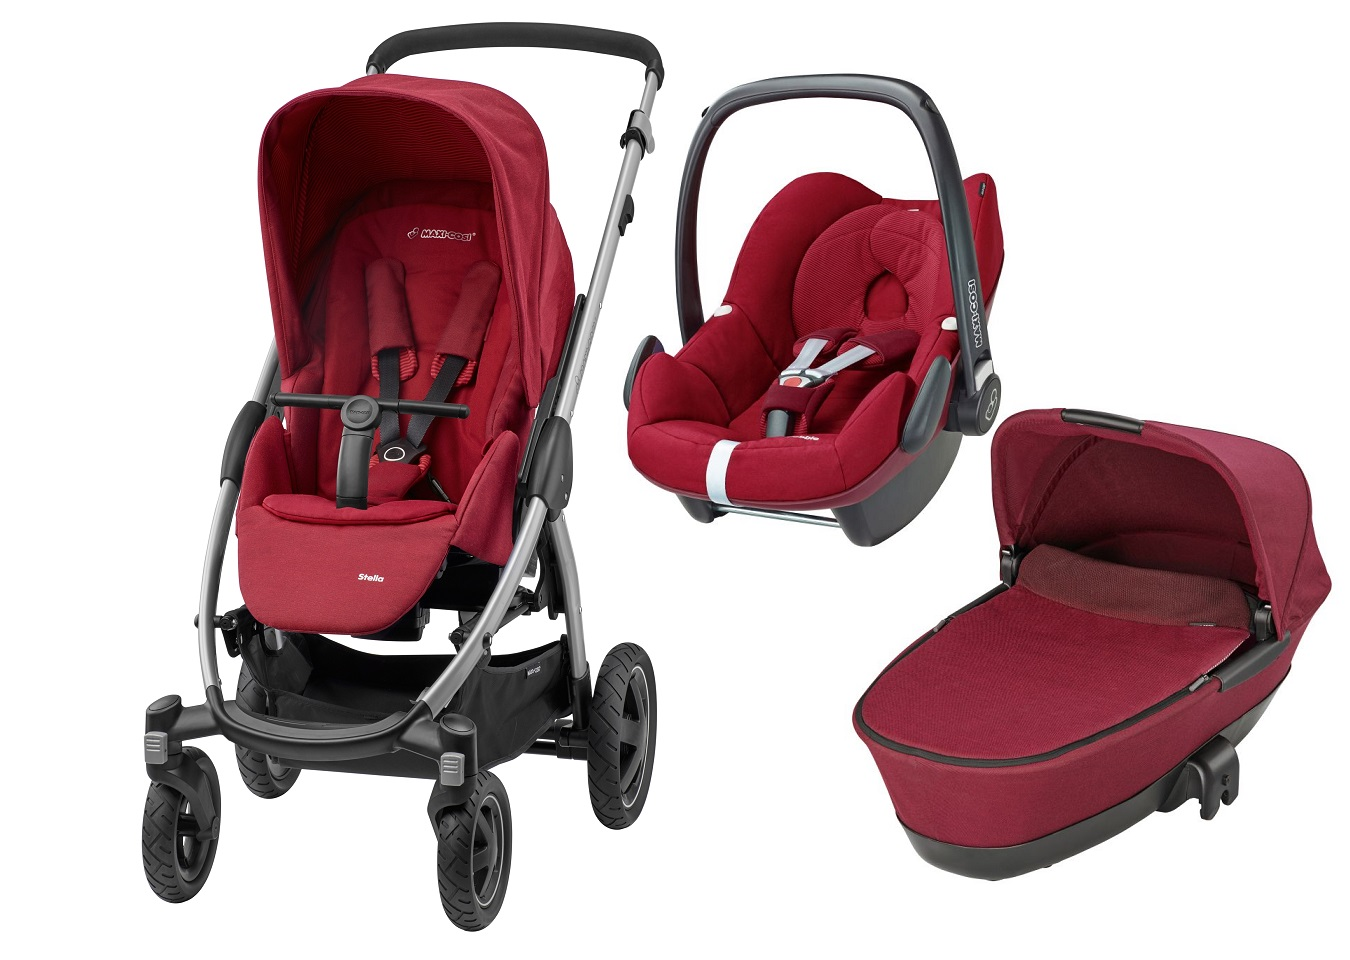 maxi cosi stella incl nacelle fixation porte b b pebble 2017 robin red acheter sur. Black Bedroom Furniture Sets. Home Design Ideas